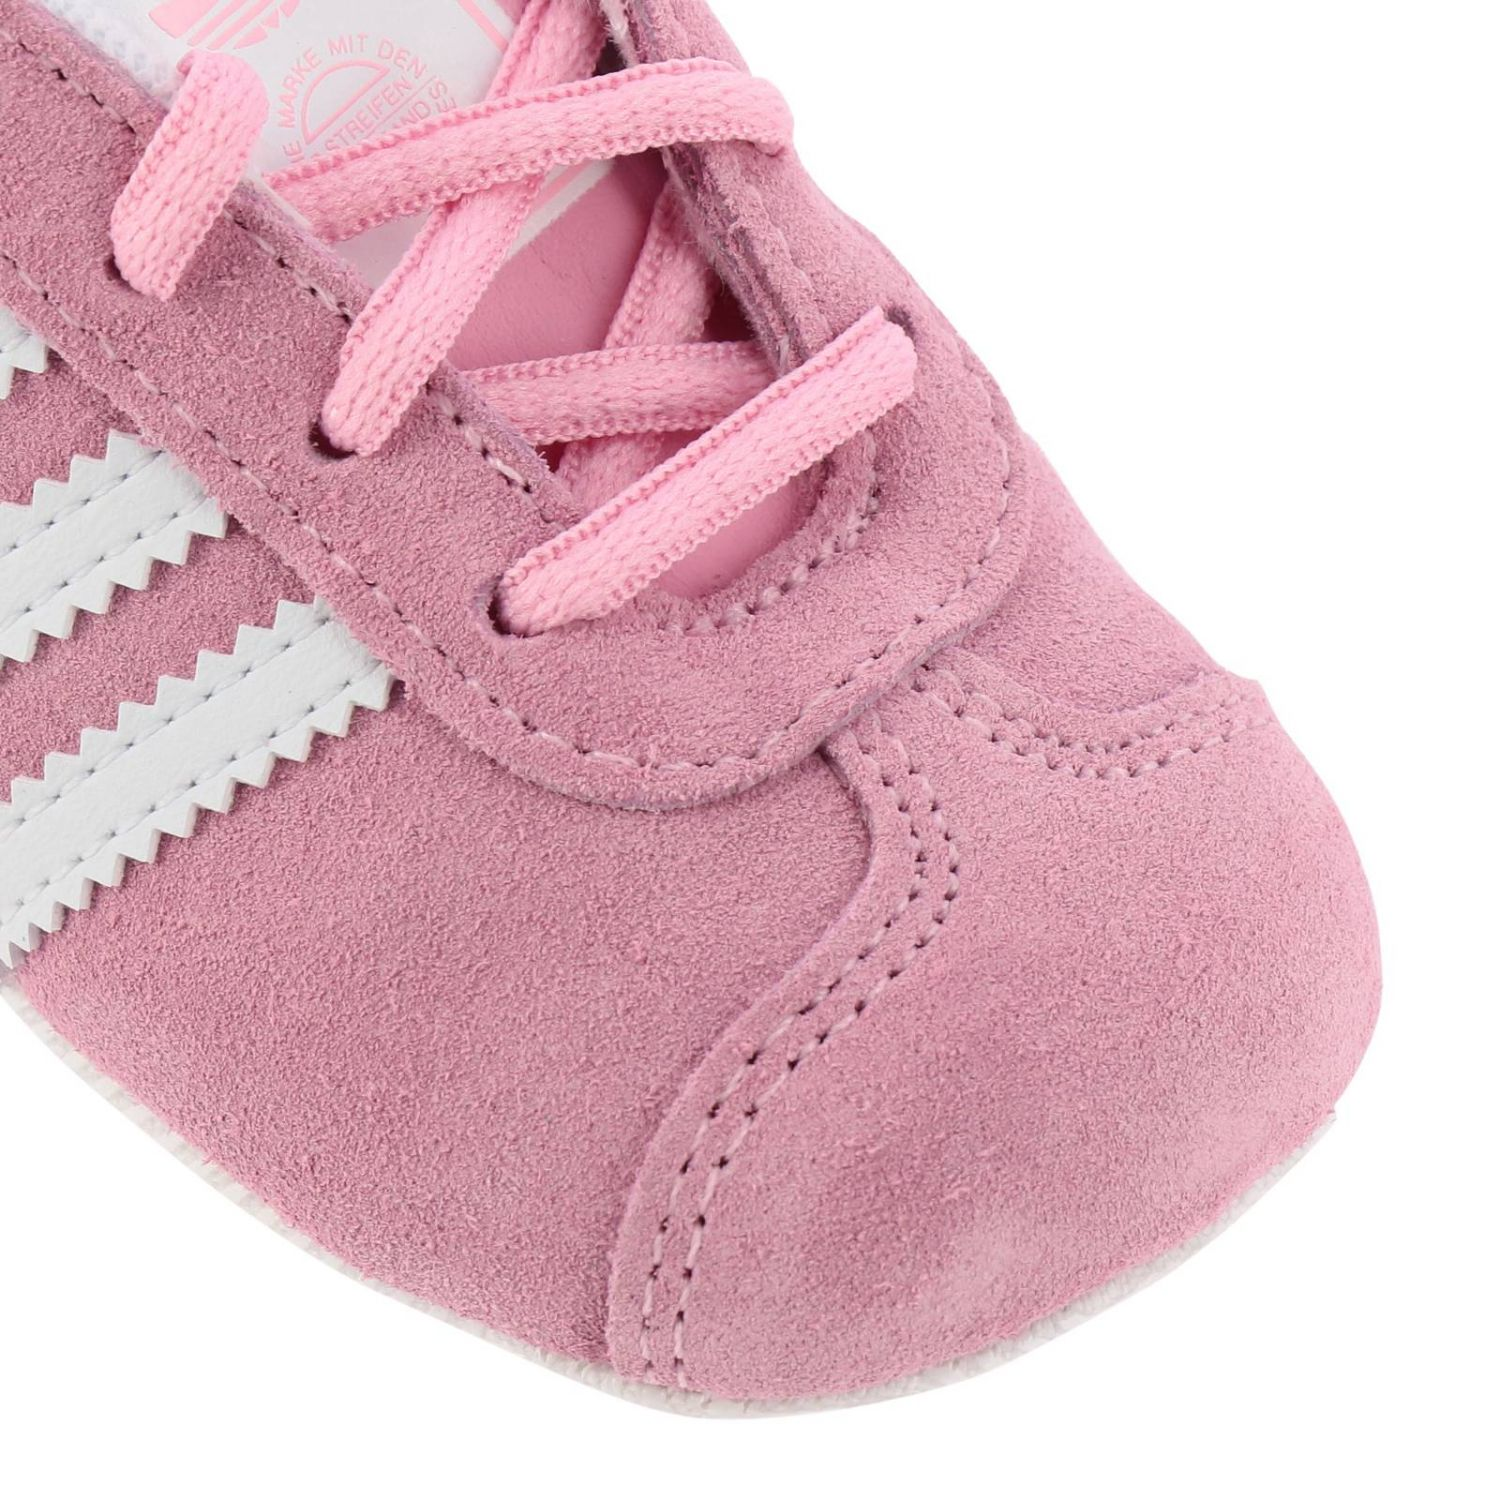 Shoes Adidas Originals: Shoes kids Adidas Originals pink 3